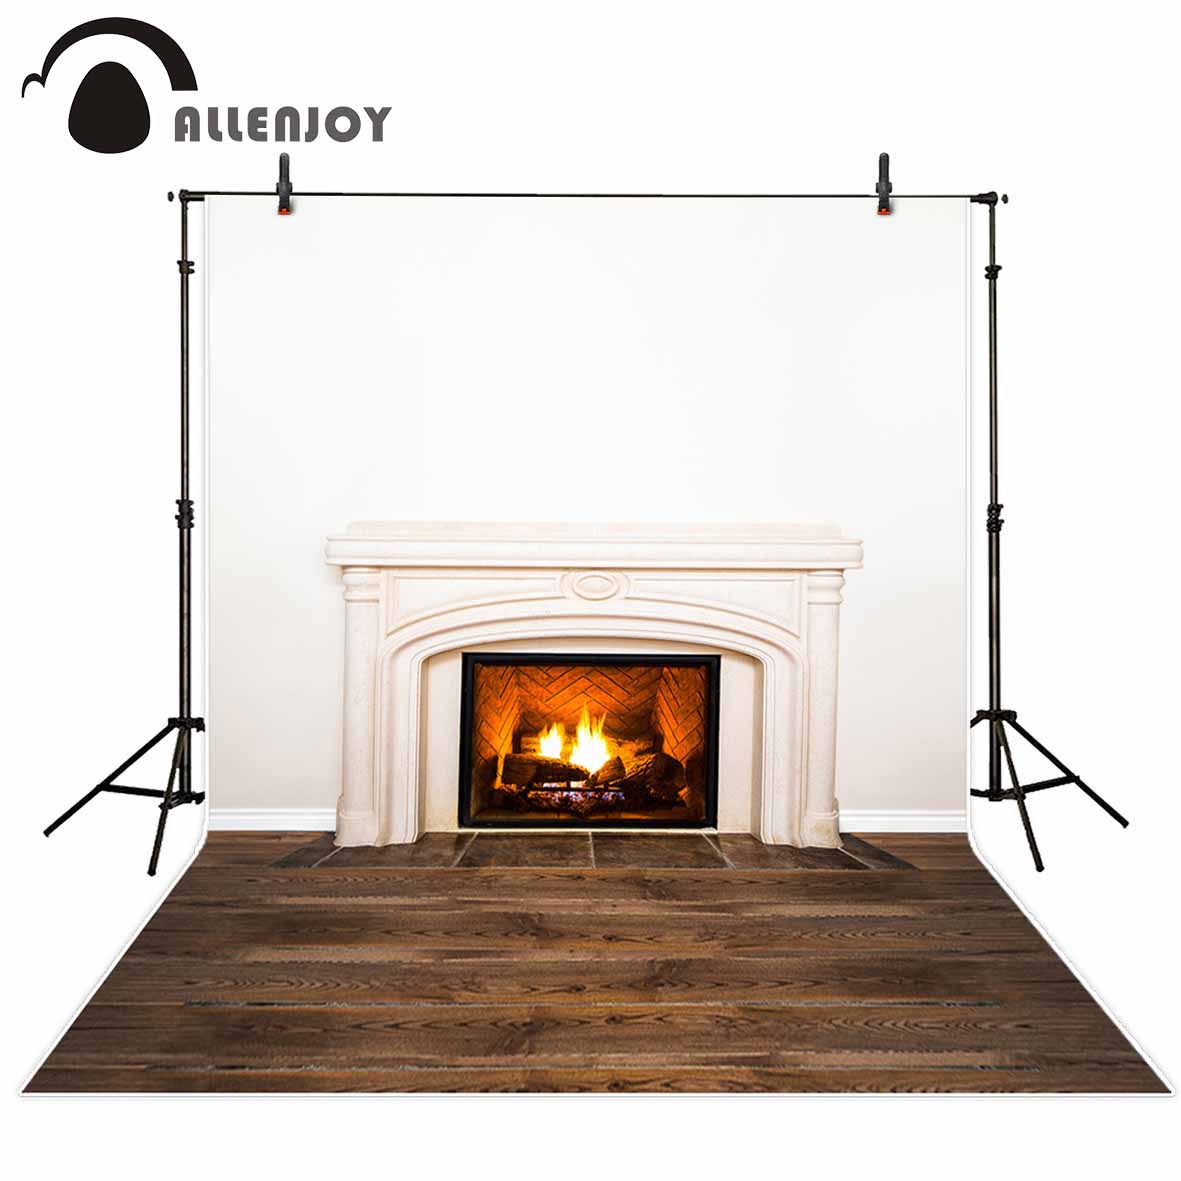 Allenjoy photo background Fireplace wood Floor Indoor White Wall photography backdrops studio funds party for the photo black and white grids floor photography background hollow vinyl photo backdrops for photo studio funds props cm 4785